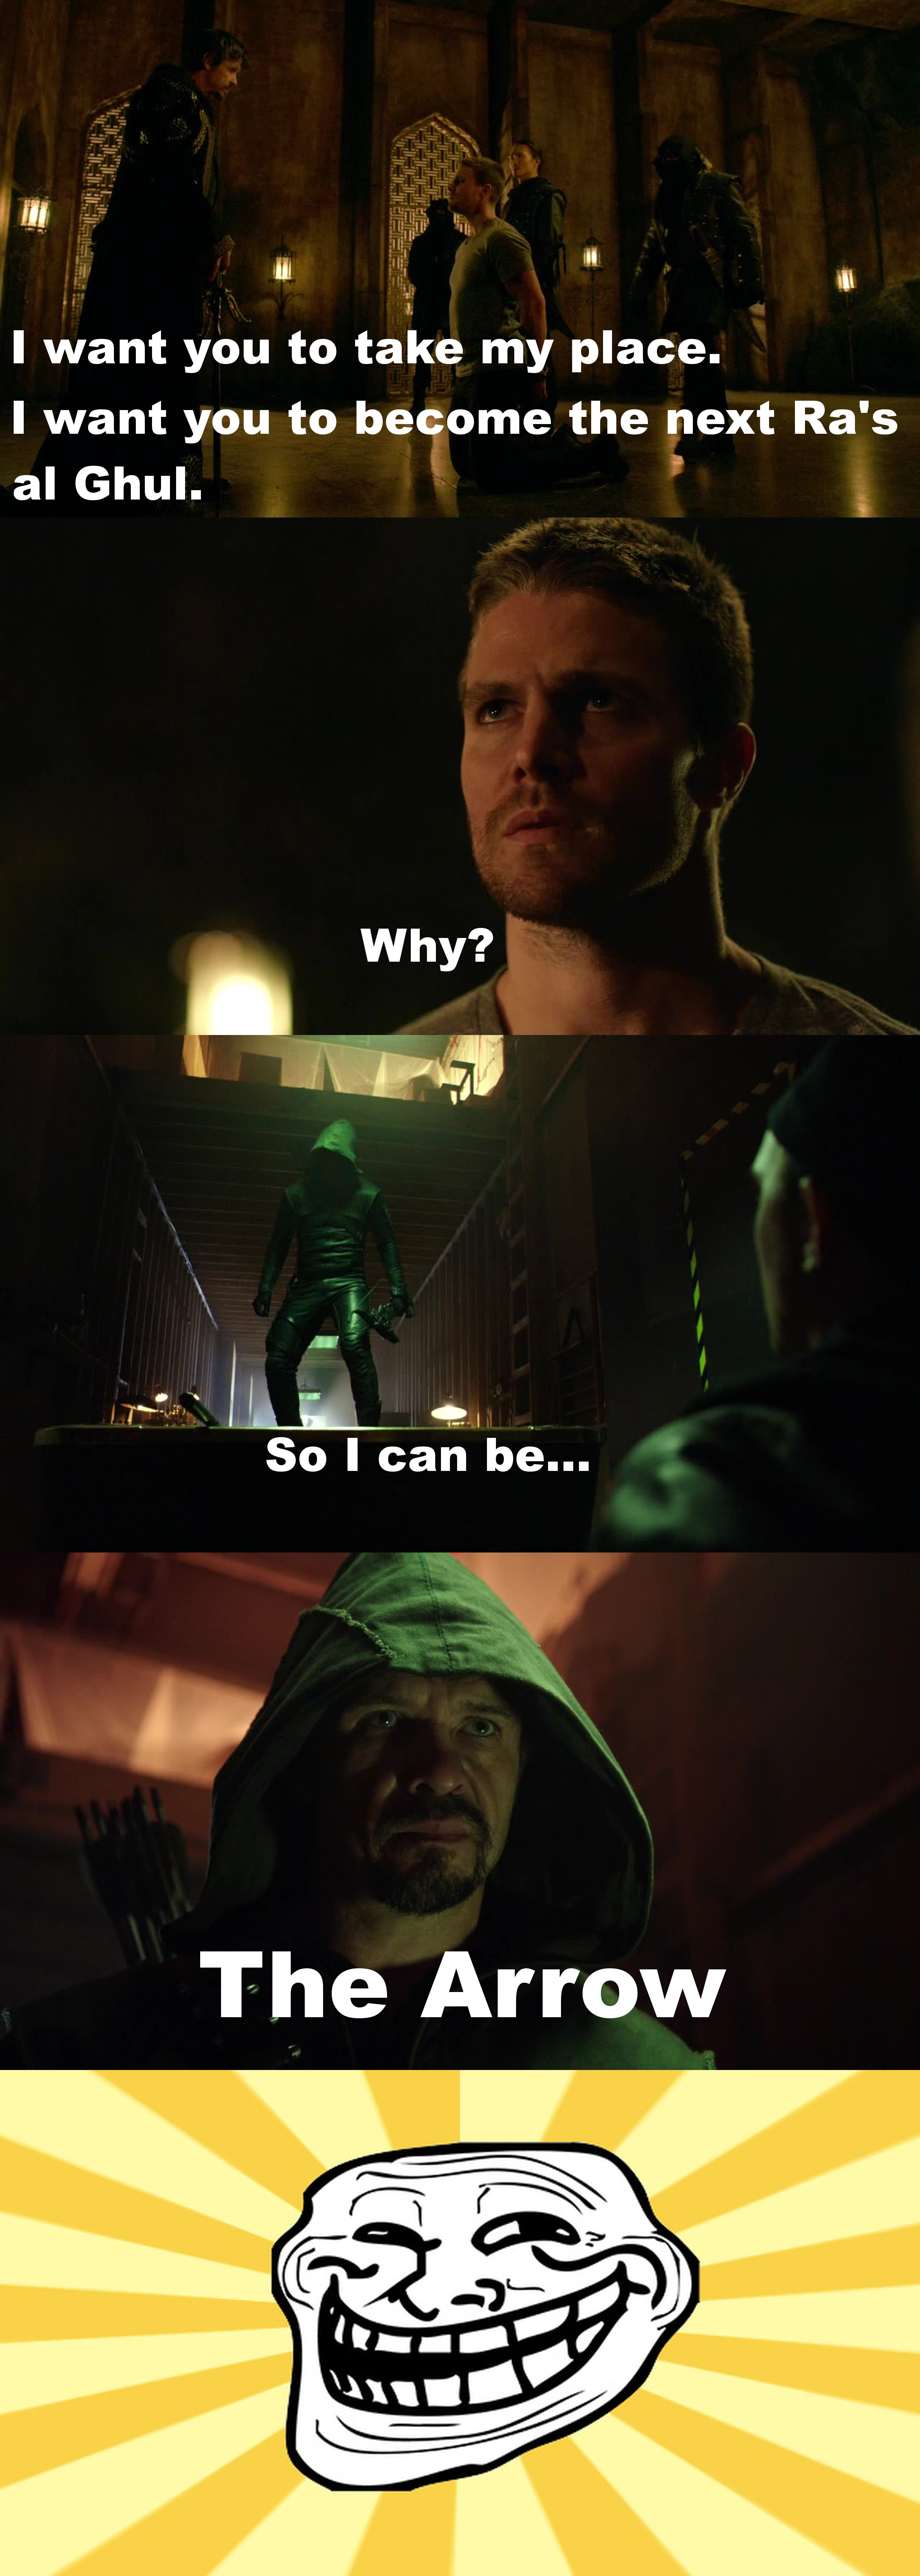 Switch places with me, Ollie! Please! - Ra's al Ghul